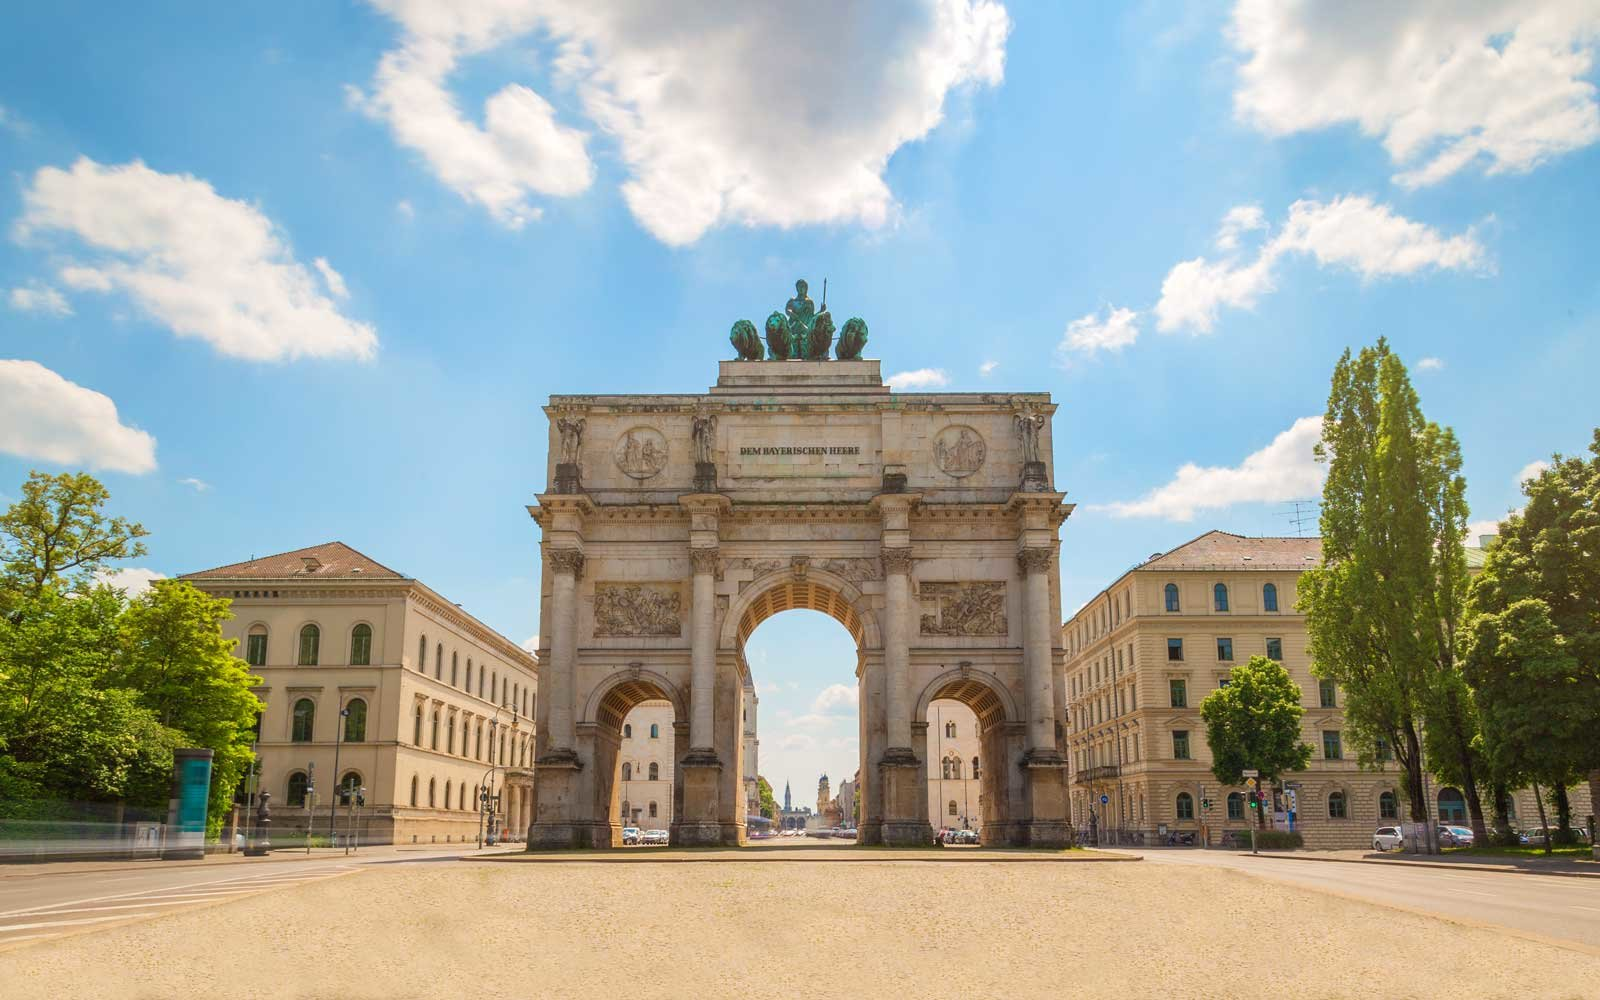 The Siegestor (Victory Gate) in Munich, Germany. Originally dedicated to the glory of the army it is now a reminder to peace.